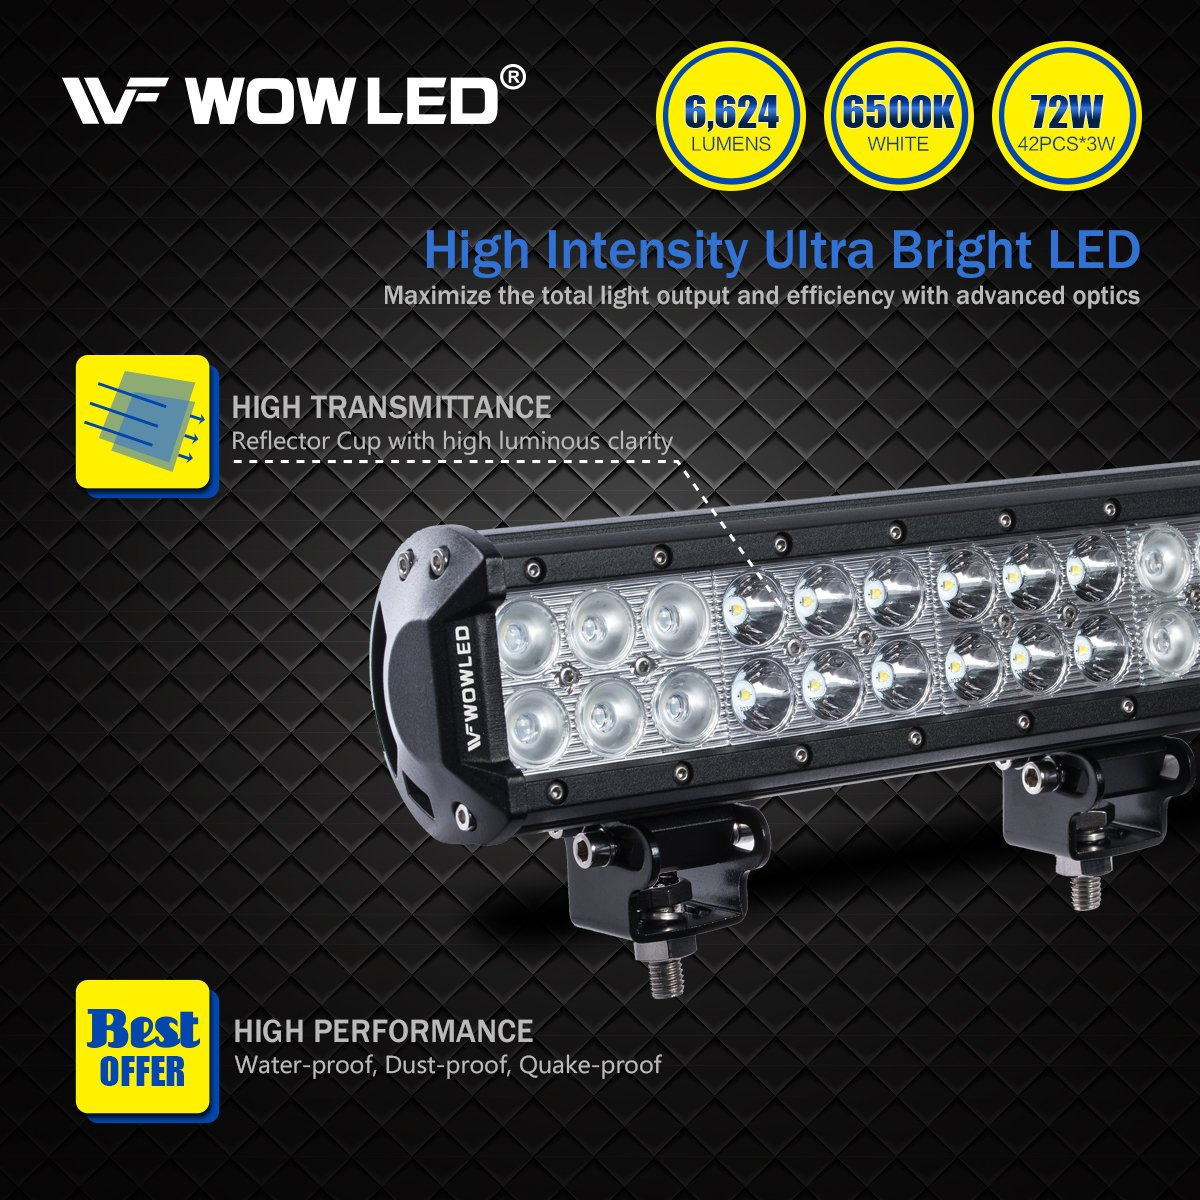 Wowled 12 Inch 72w Led Light Bar Spot Flood Combo Beam Cree Work Advanced Bicycle Lightings Lights Lamp For Tuck Offroad Driving Suv Ute 4wd 12v 24v Dc